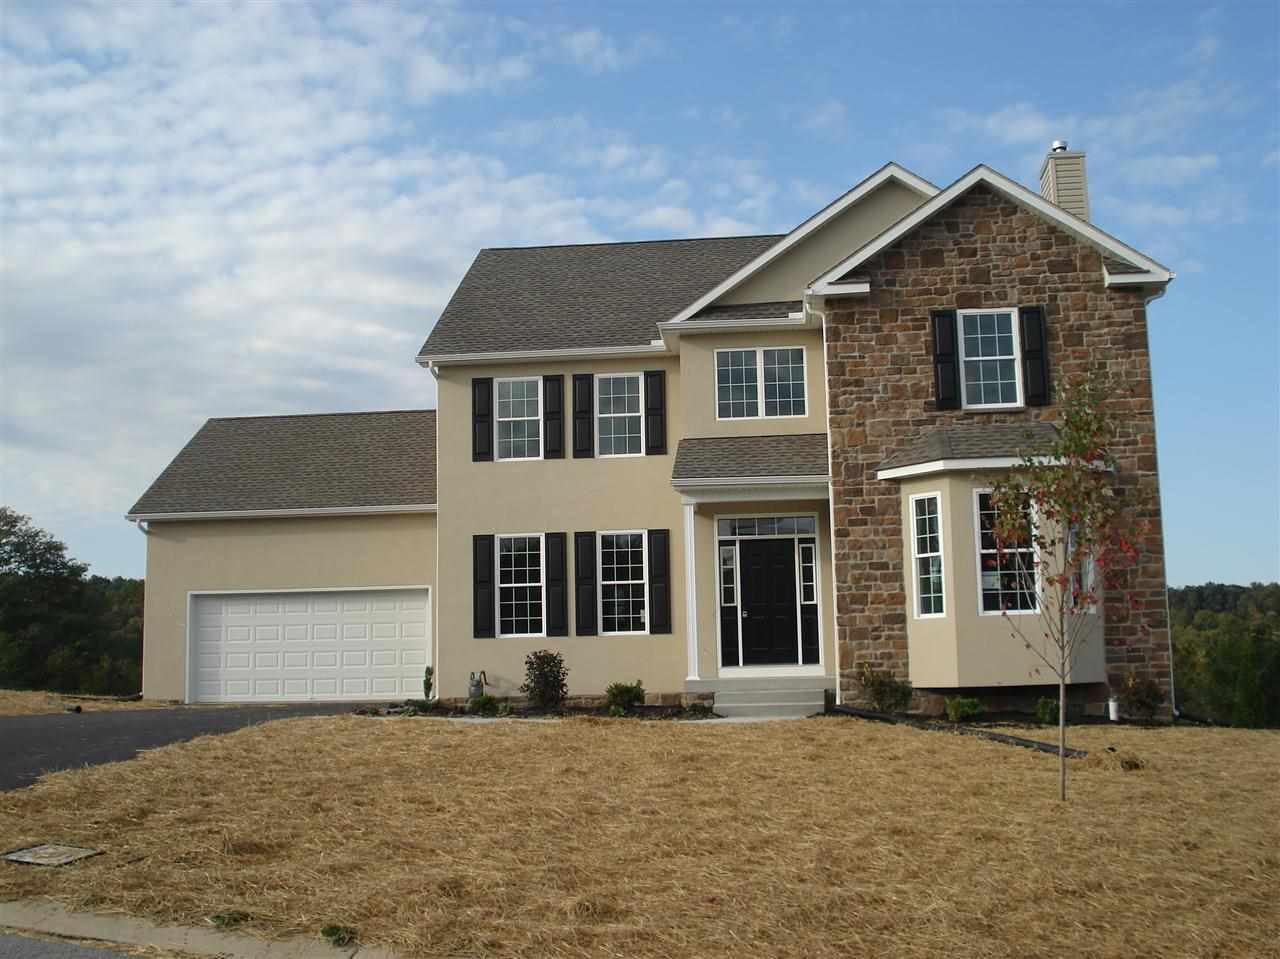 55 S Orchard View Dr, Hanover, PA 17331